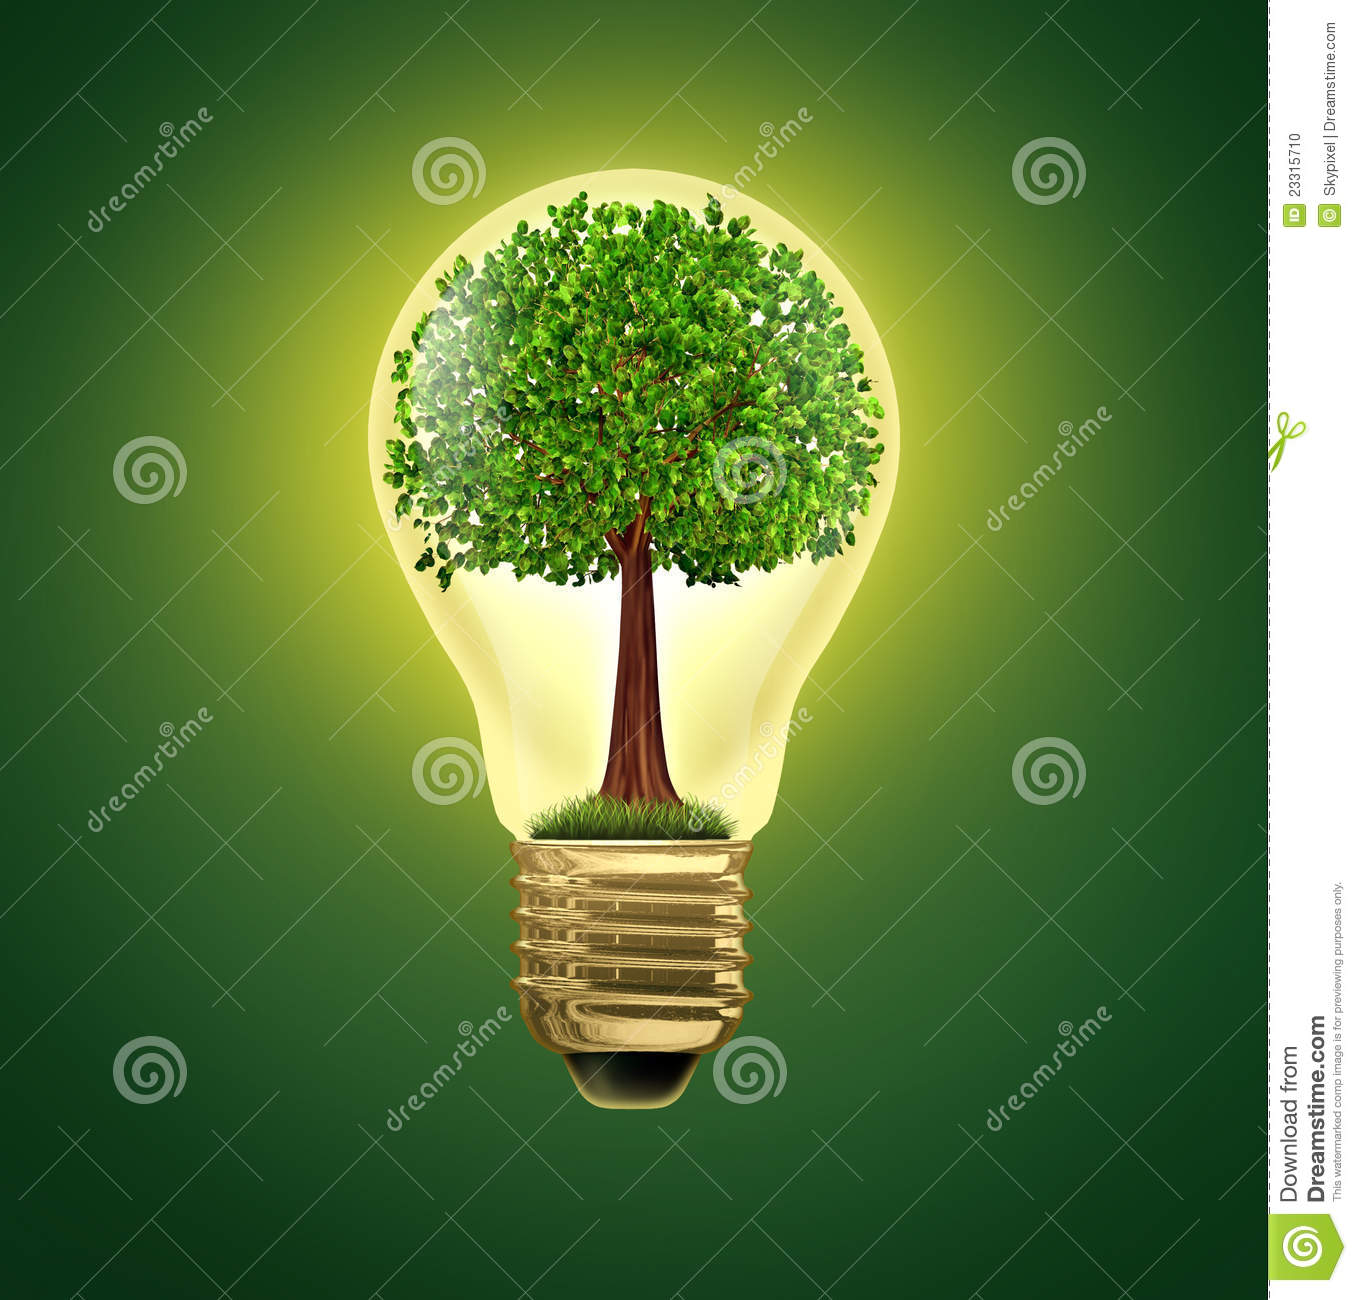 environmental ideas stock photo